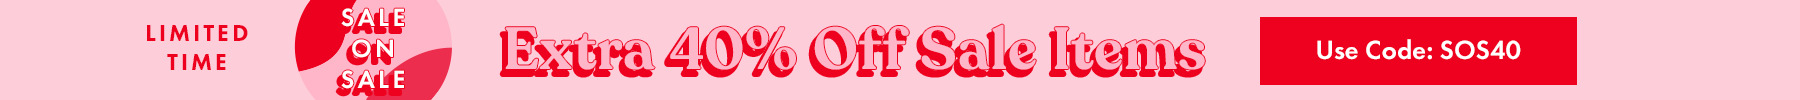 EXTRA 40% OFF Sale Items Use Code: SOS40